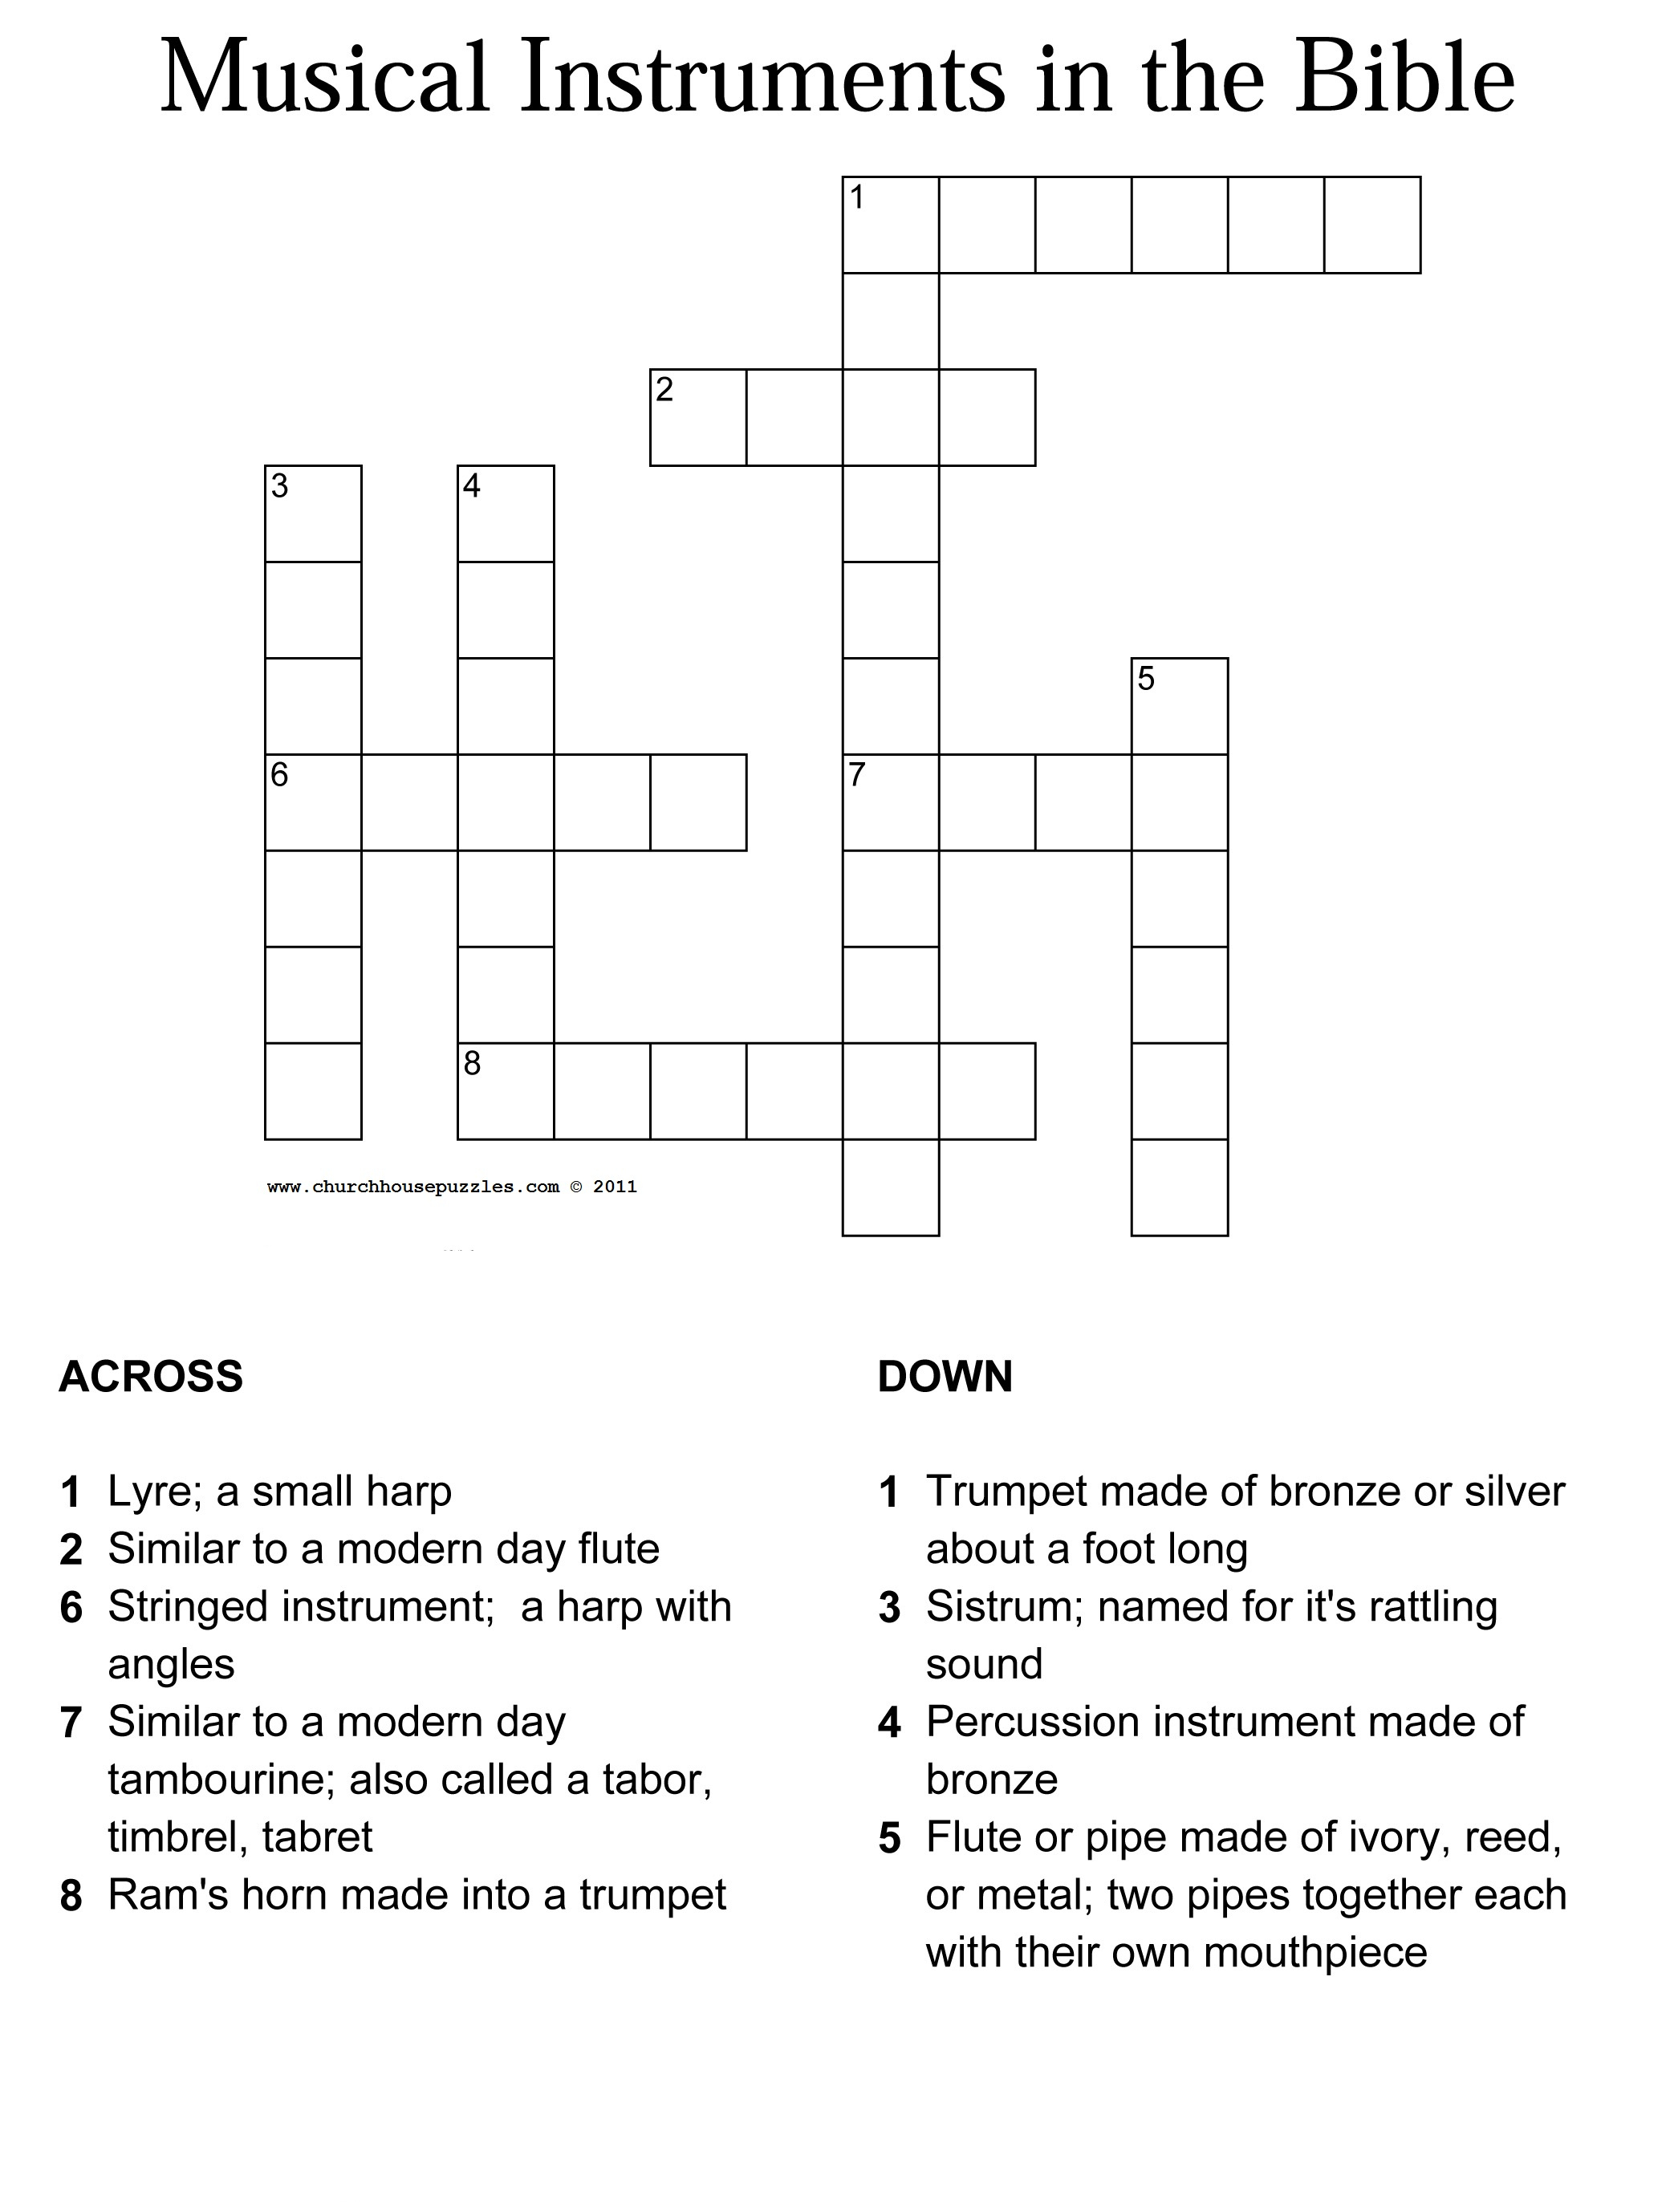 Musical Instruments Of The Bible Crossword Puzzle - Printable Music Crossword Puzzles